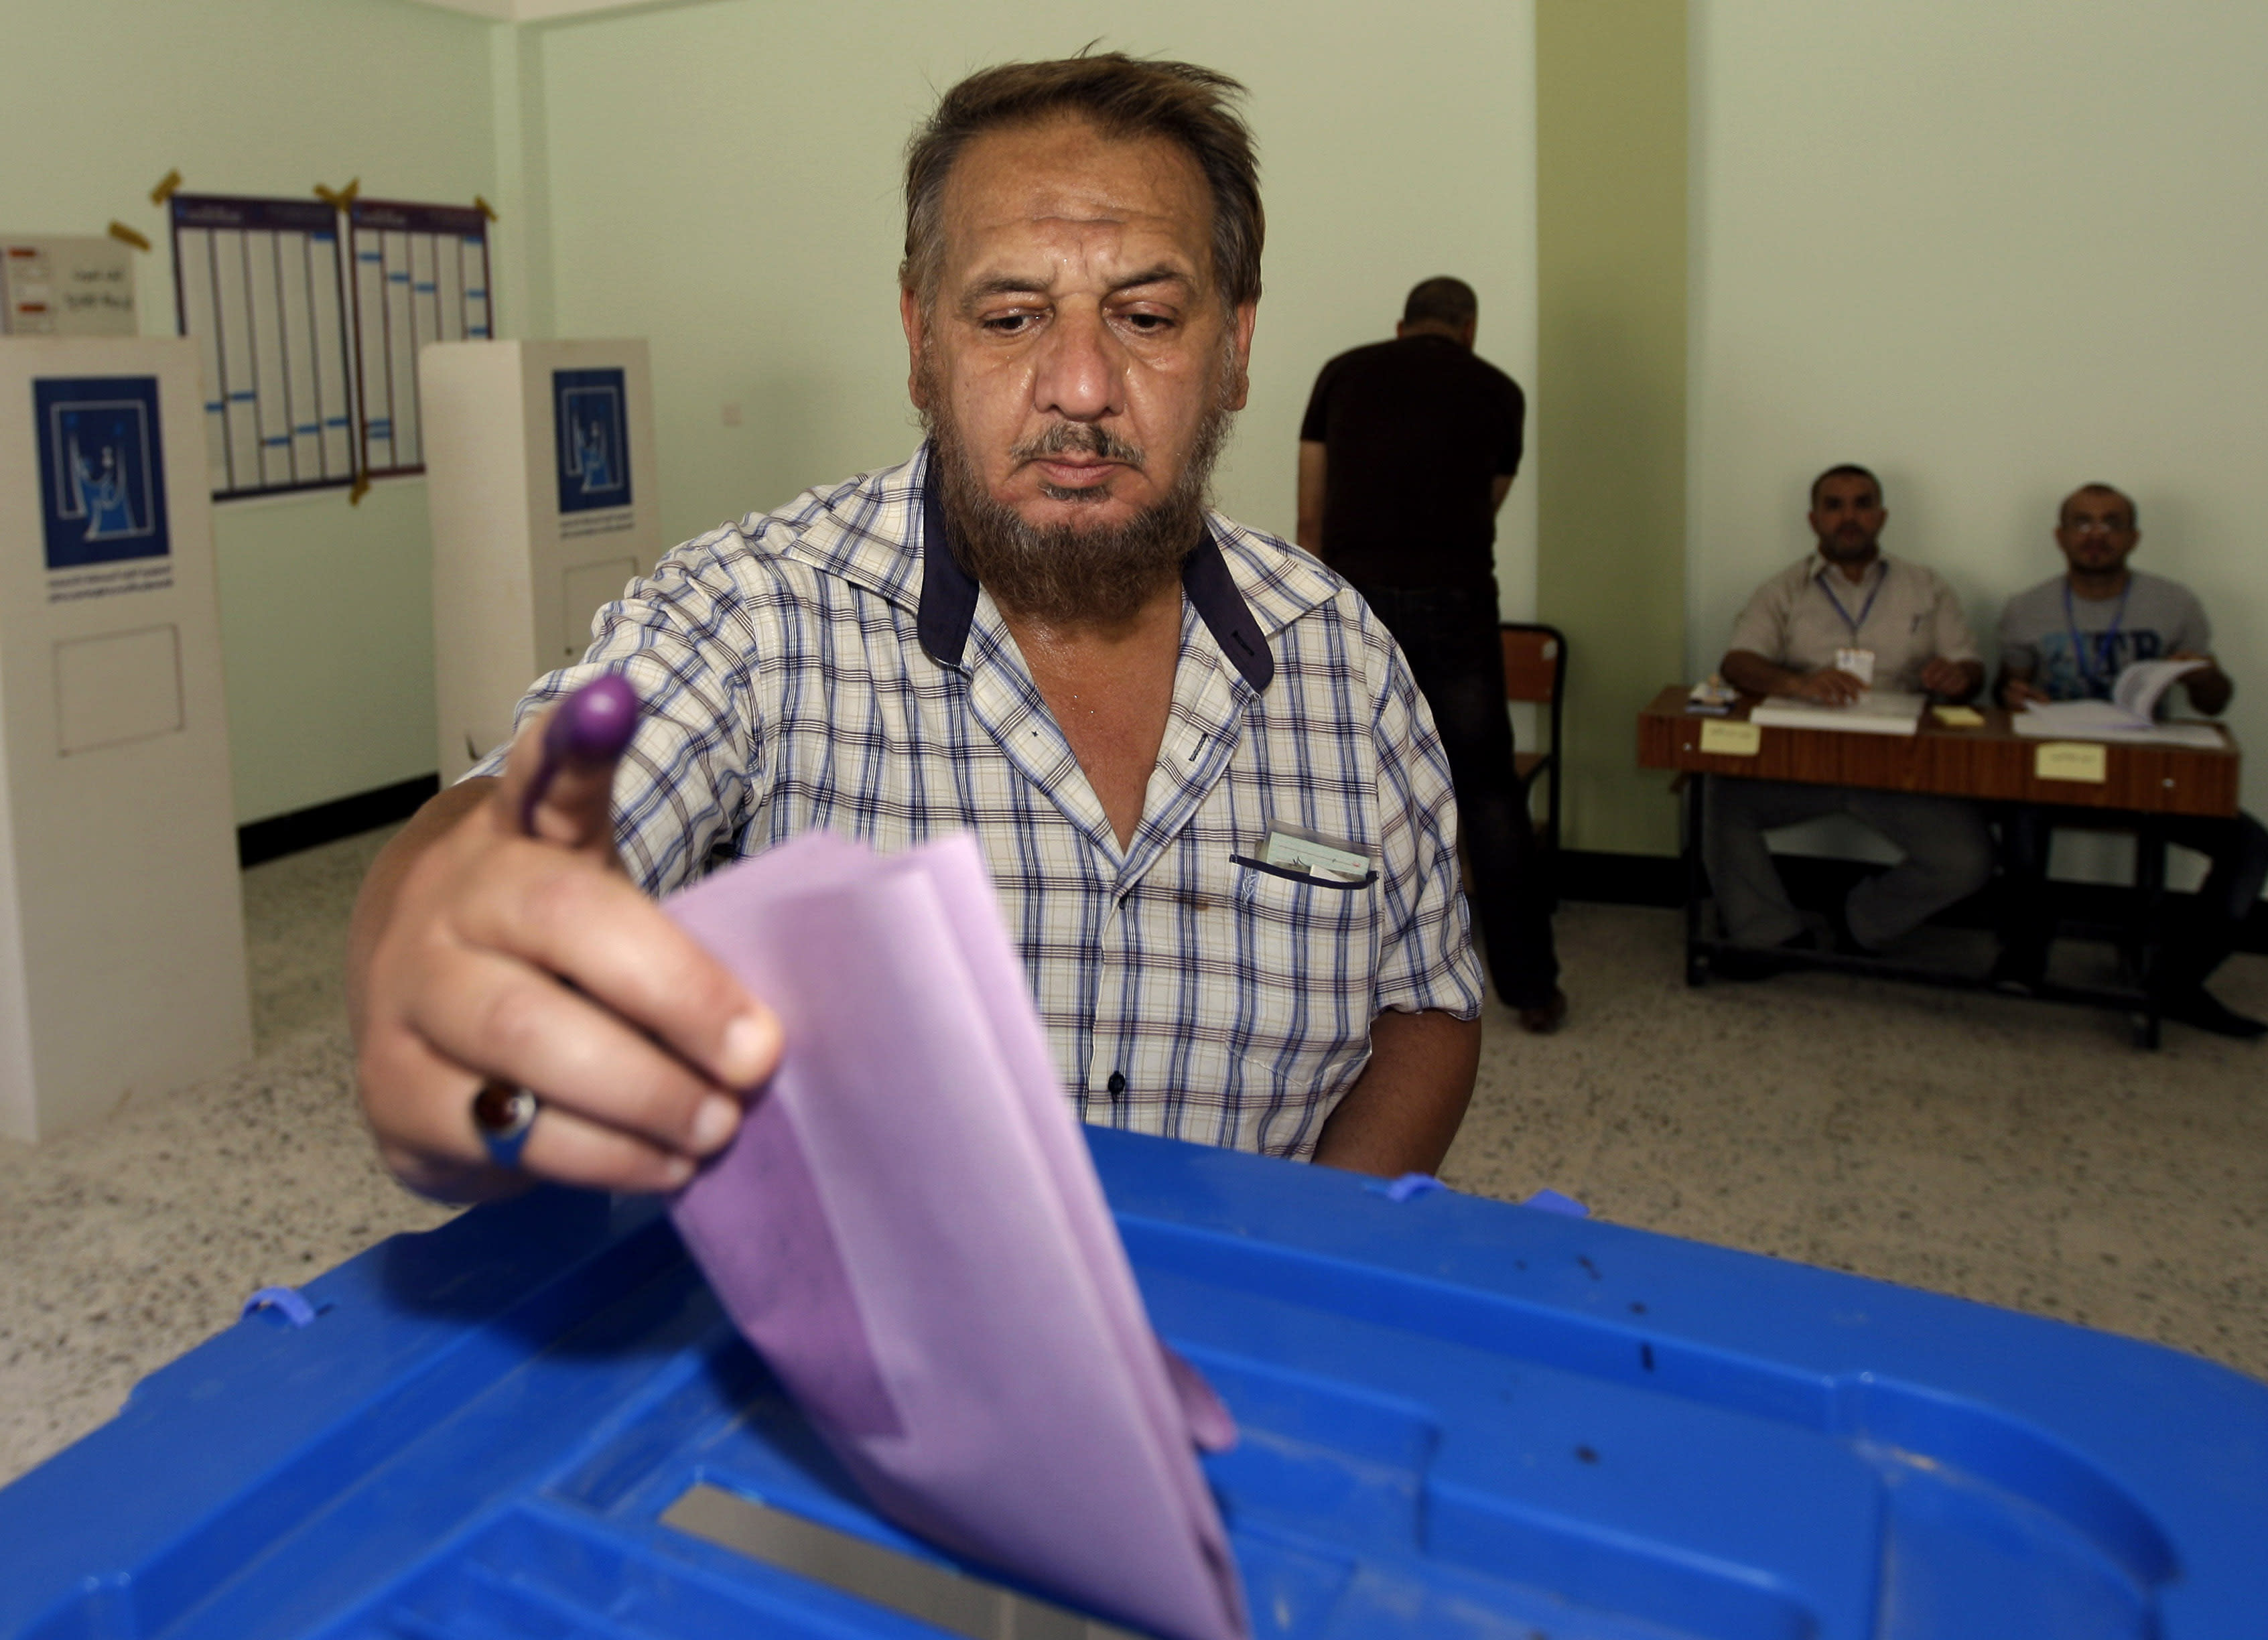 An Iraqi man casts his ballot at a polling center during the country's provincial elections in Fallujah, Iraq, Thursday, June 20, 2013. Iraqis in two Sunni-dominated provinces voted Thursday in provincial elections marked by tight security measures that left streets in former insurgent strongholds largely deserted. (AP Photo/Khalid Mohammed)